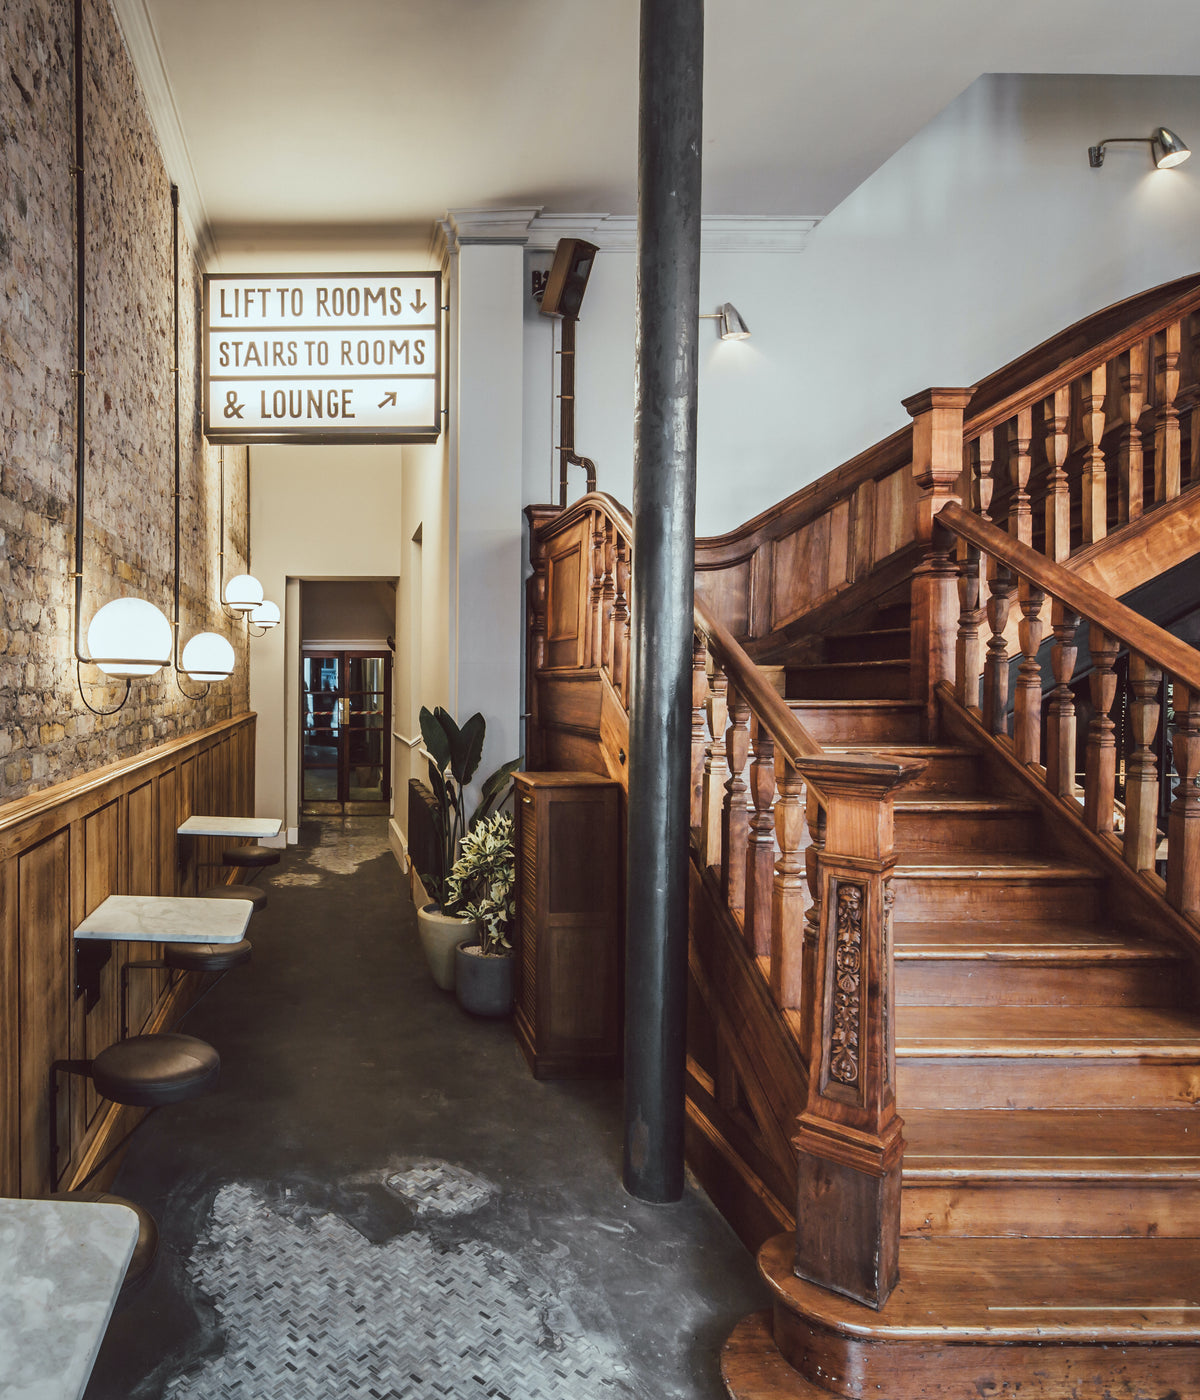 The Pilgrm, London, UK - hotel lobby with modern exposed brick wall and antique Victorian wood staircase